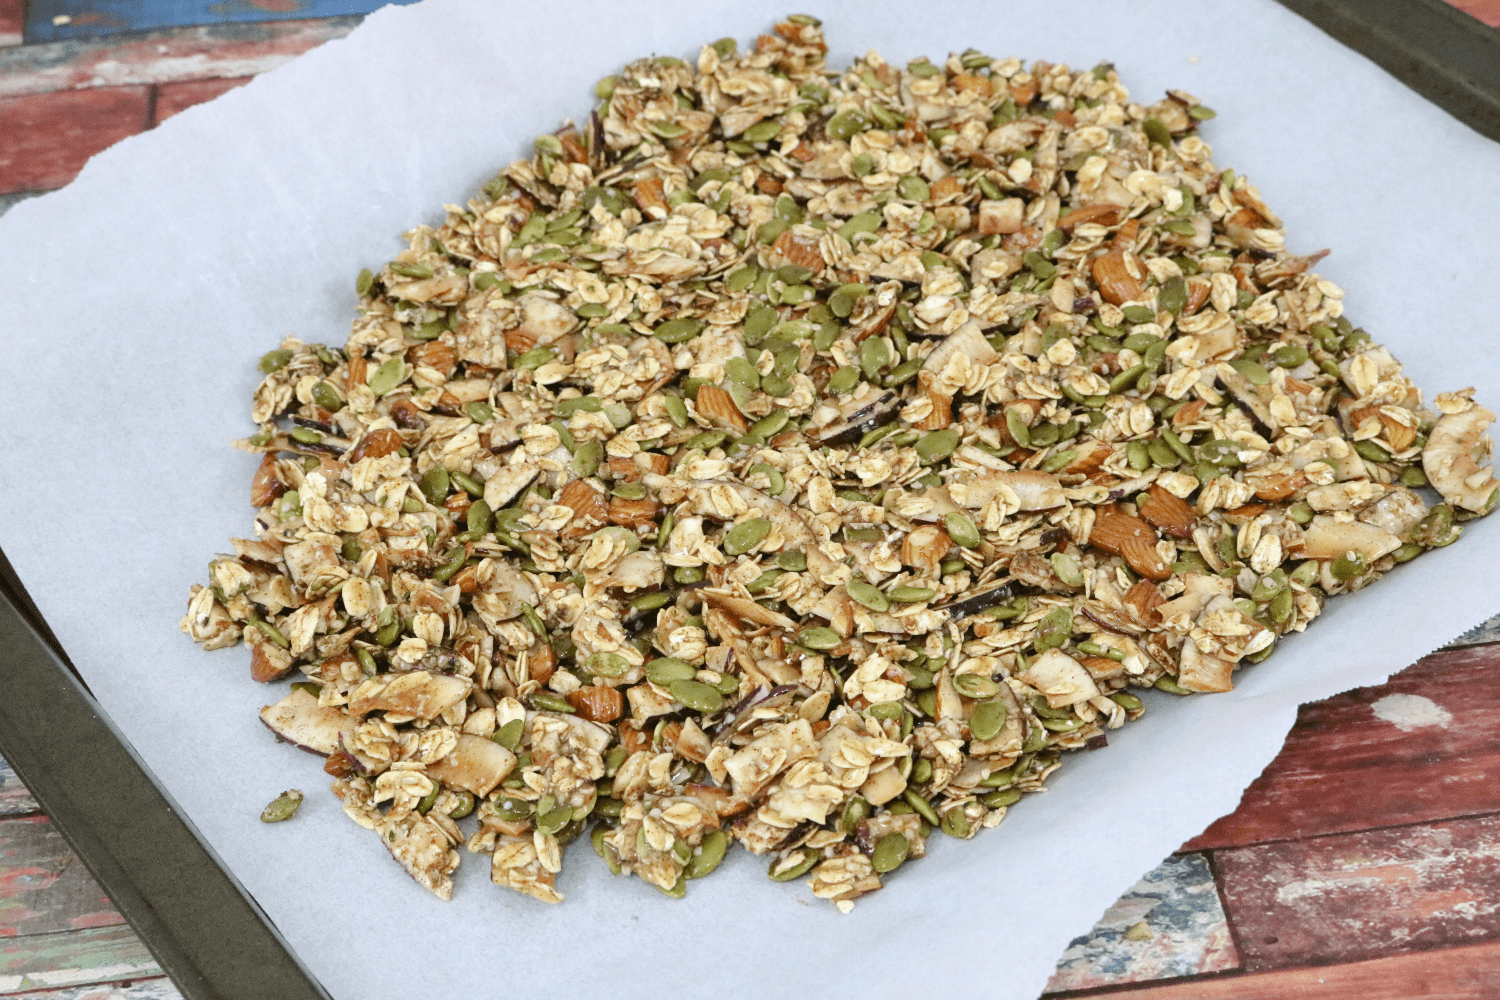 Homemade granola on a baking tray lined with parchment paper